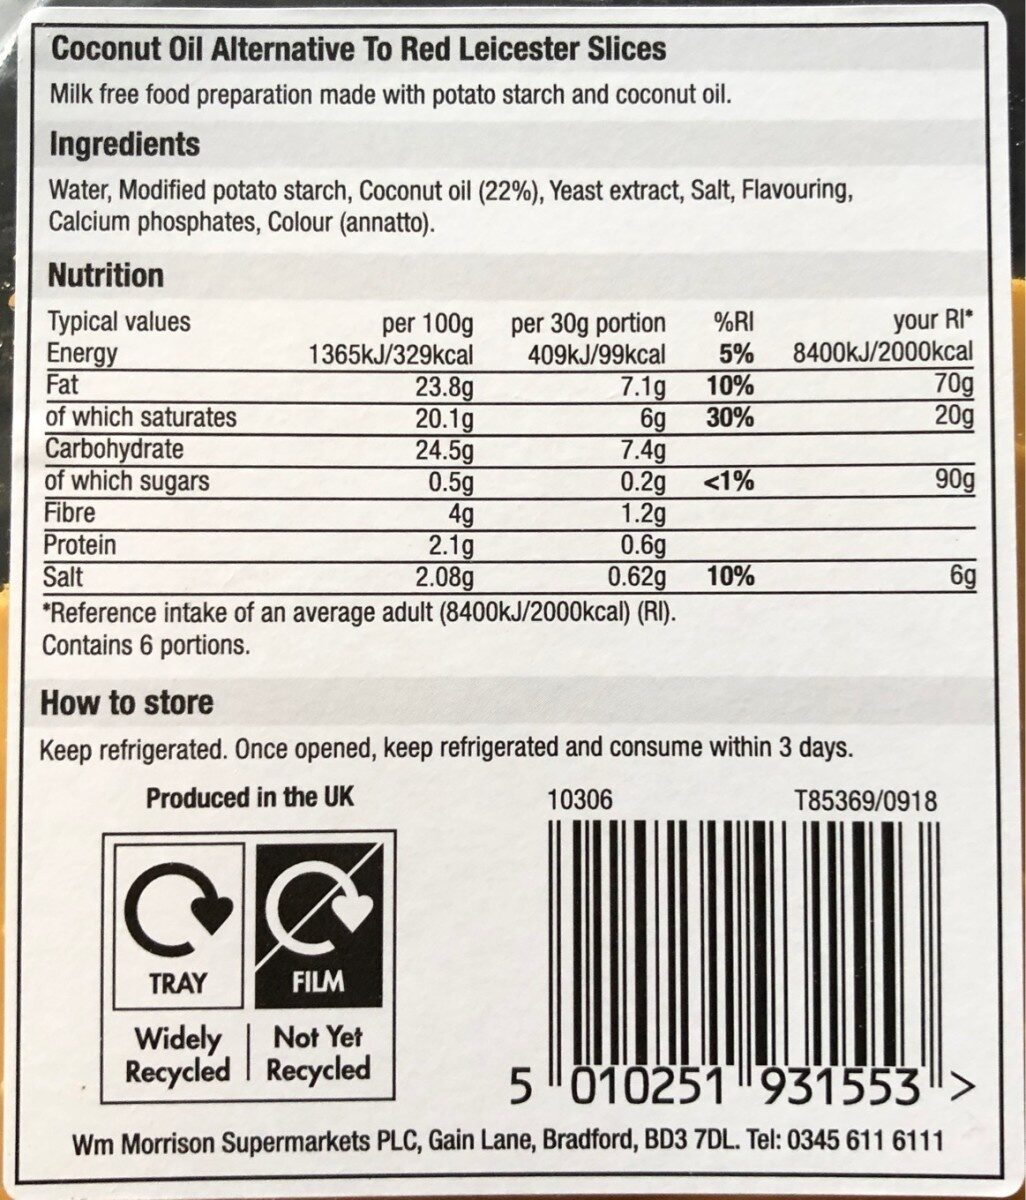 Taste - coconut oil alternative to red leicester slices - Nutrition facts